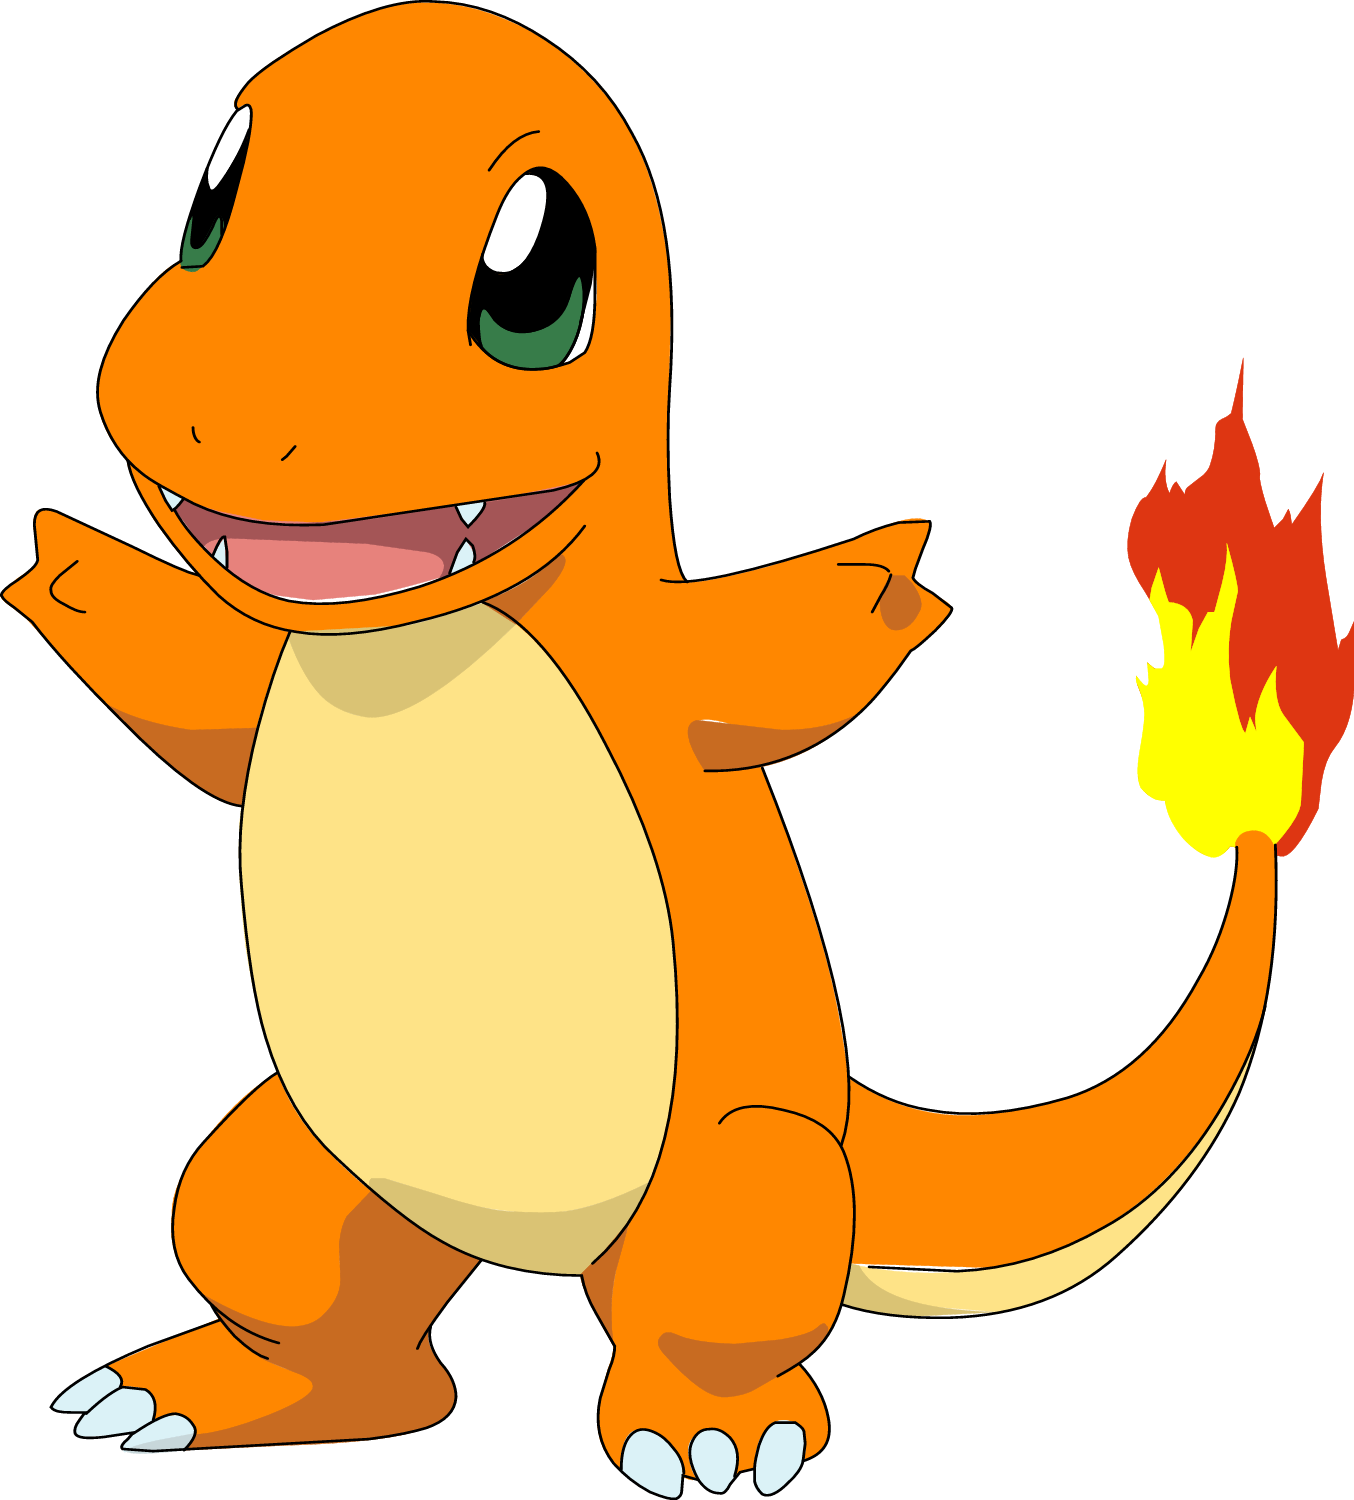 Free download. Pokemon png images